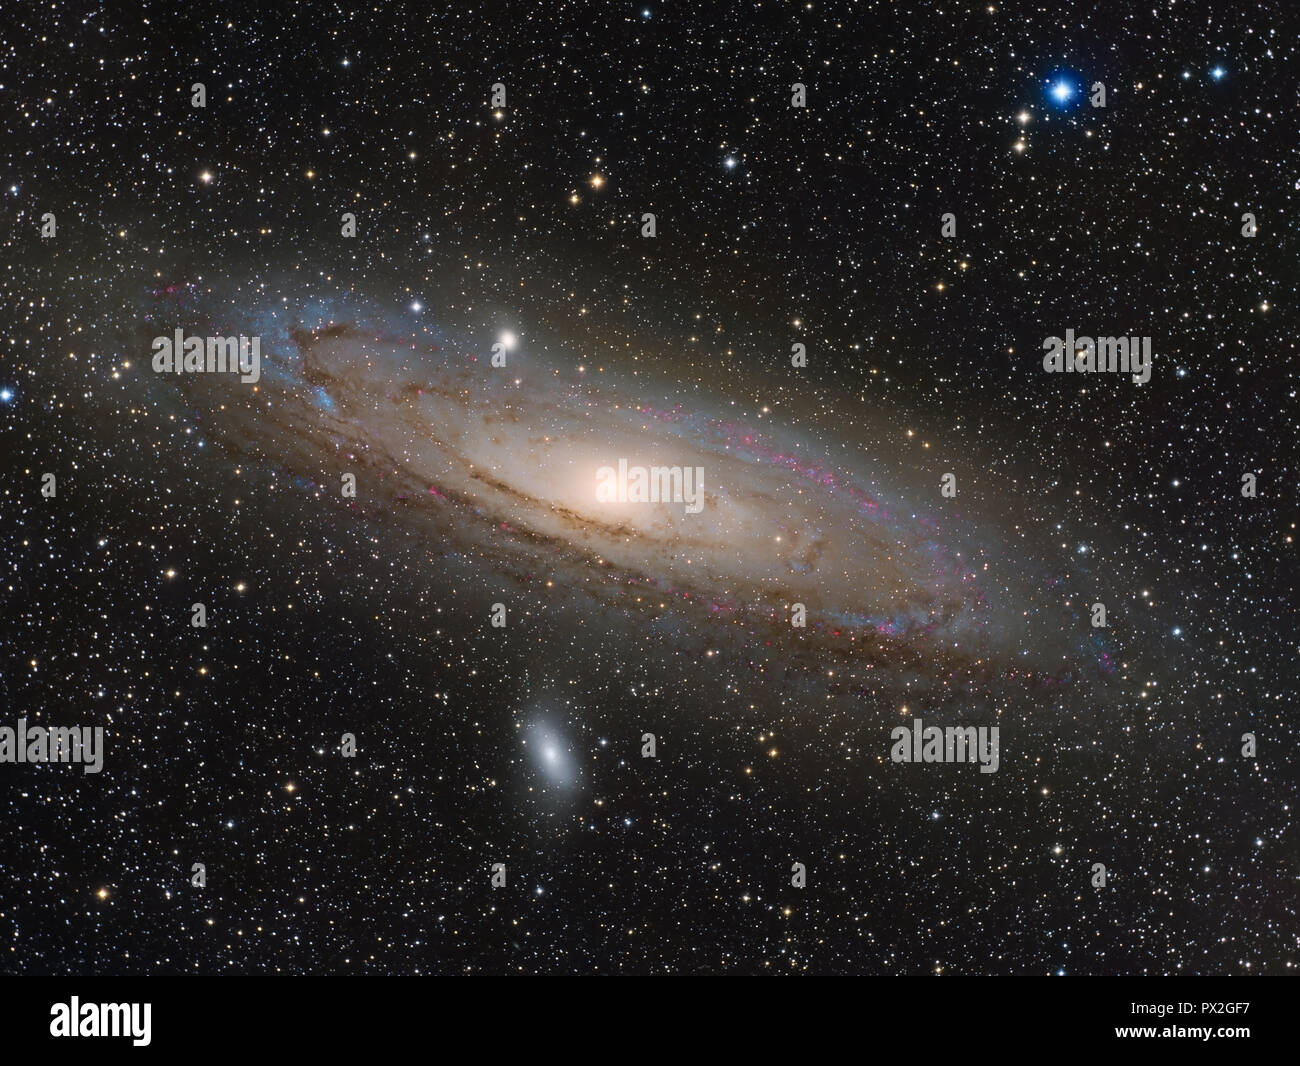 M31 Andromeda galaxy. This shoot in the visible light spectrum and in that of hydrogen, shows the many emission nebulae present in our neighbouring gal - Stock Image